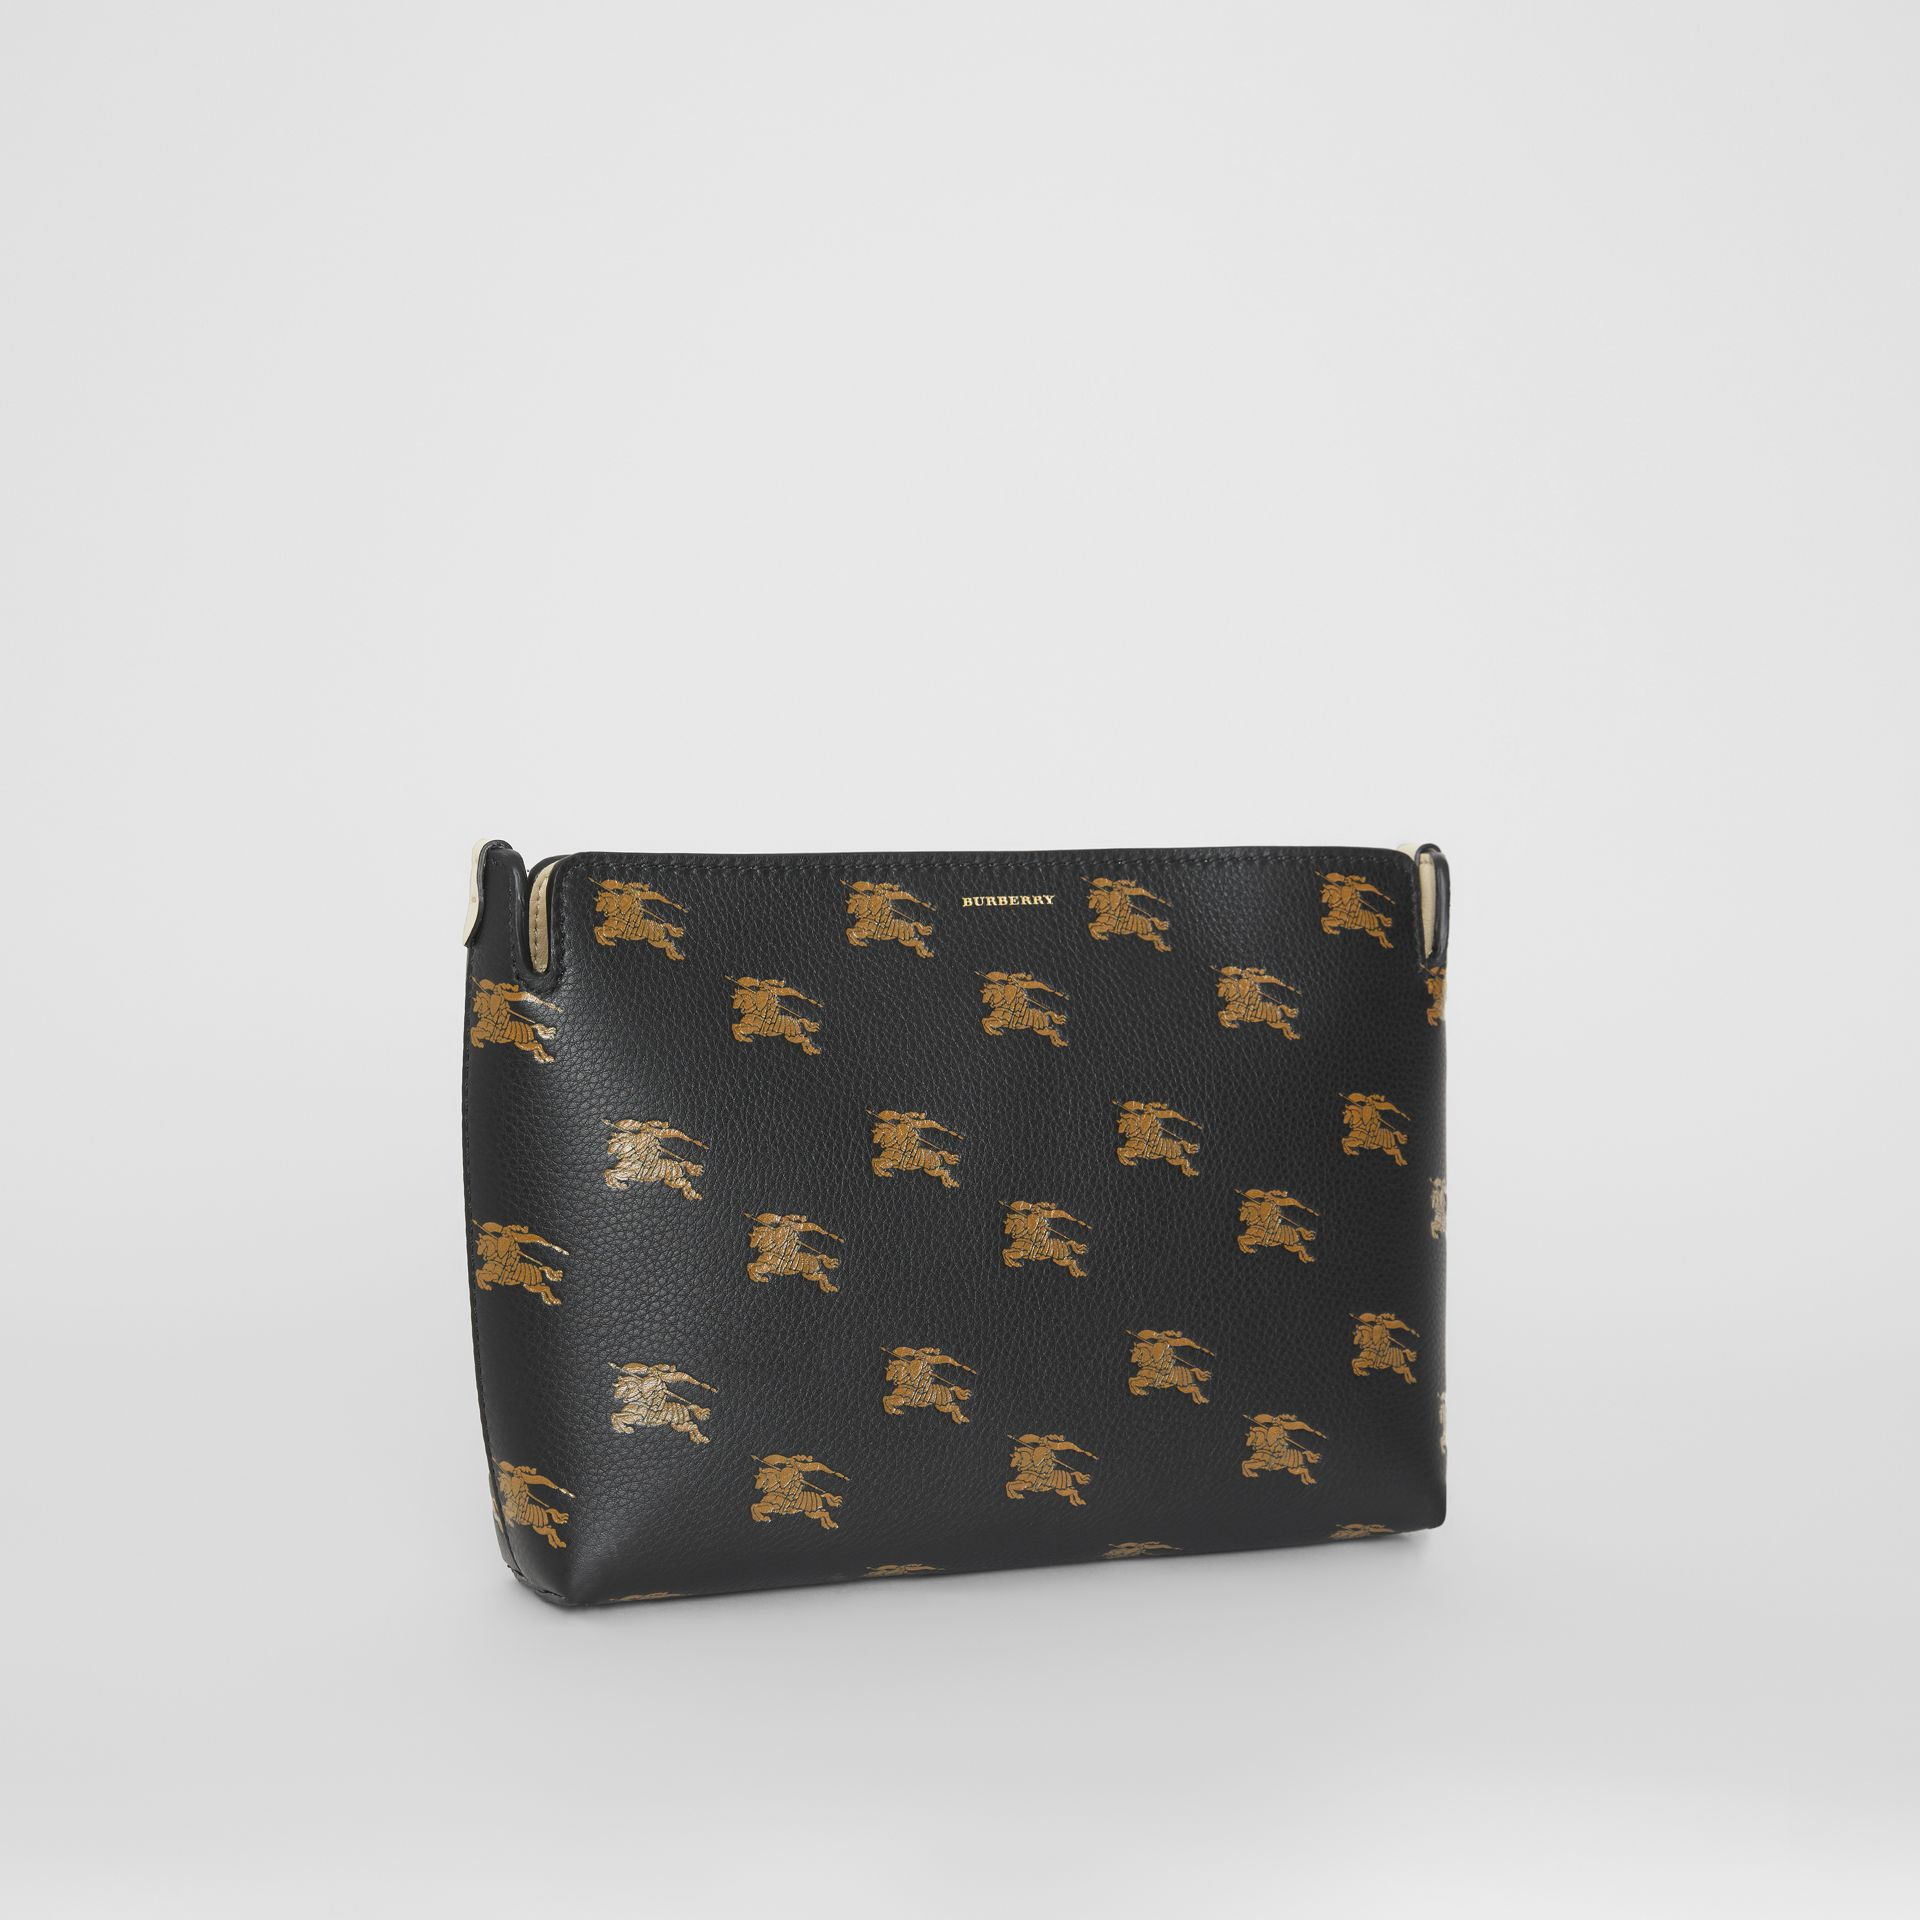 Medium Equestrian Knight Leather Clutch in Black - Women | Burberry United Kingdom - gallery image 6